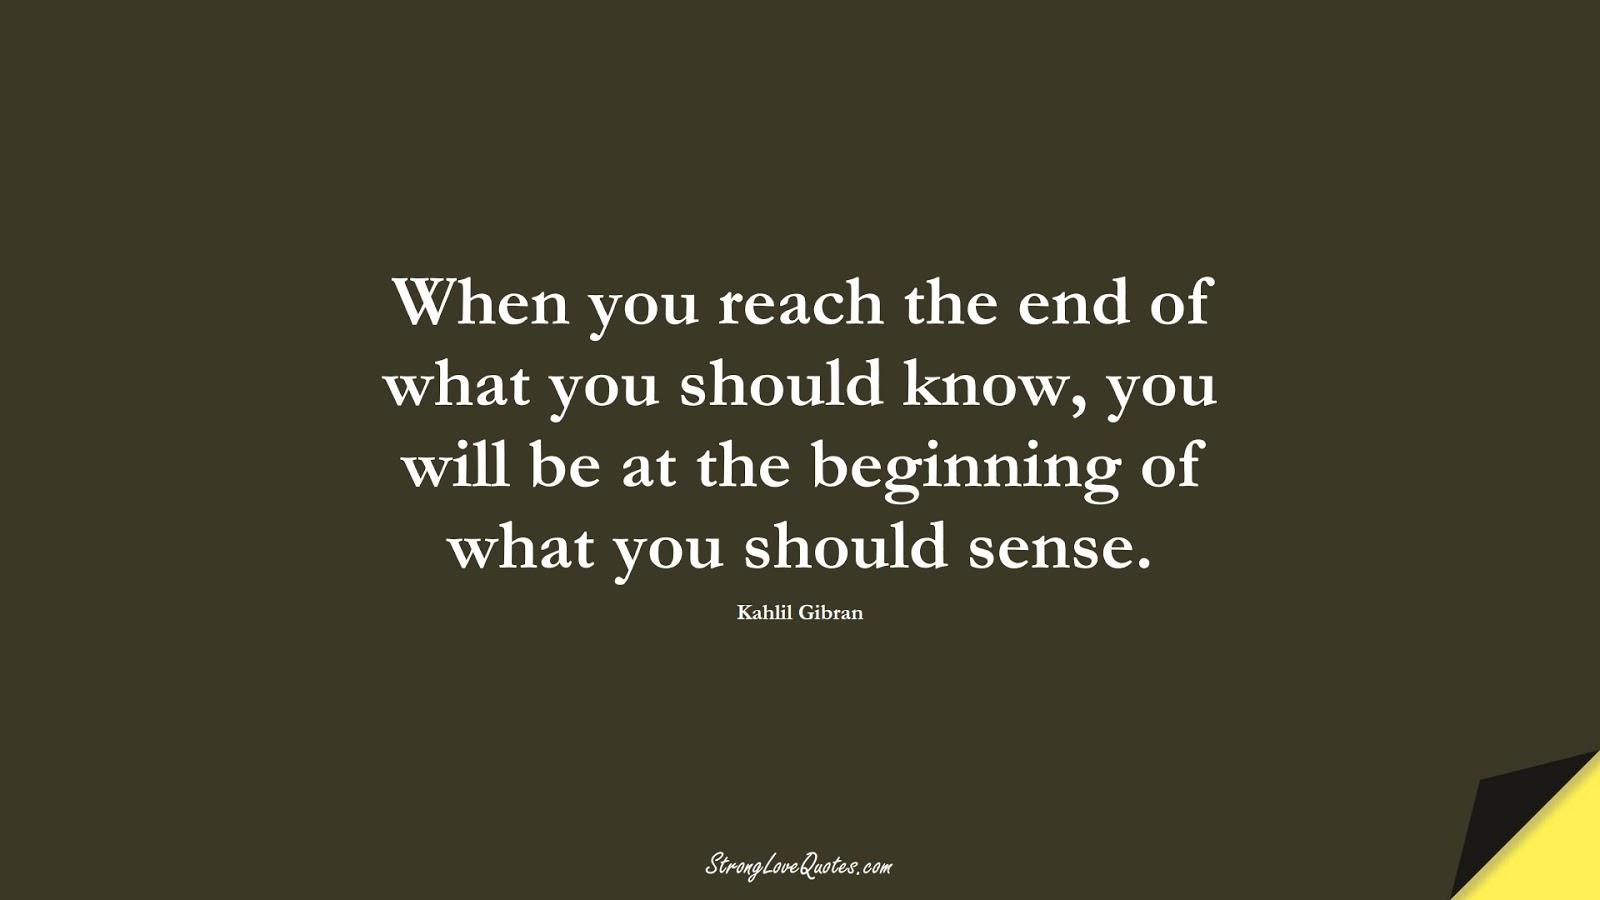 When you reach the end of what you should know, you will be at the beginning of what you should sense. (Kahlil Gibran);  #KnowledgeQuotes